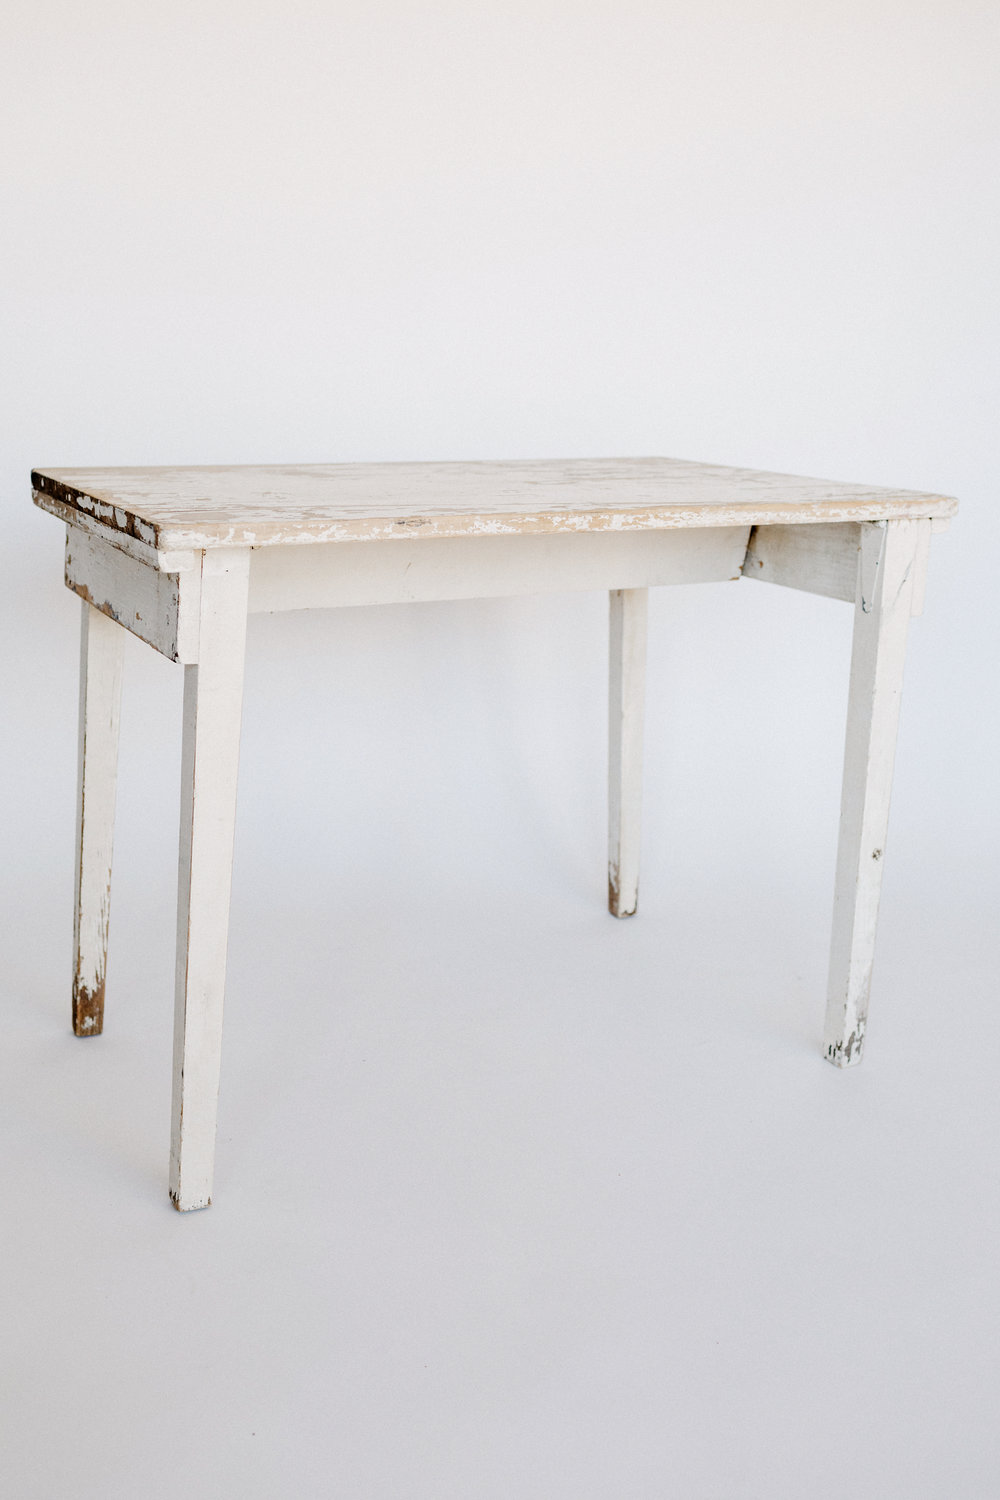 Farmhouse Table #4